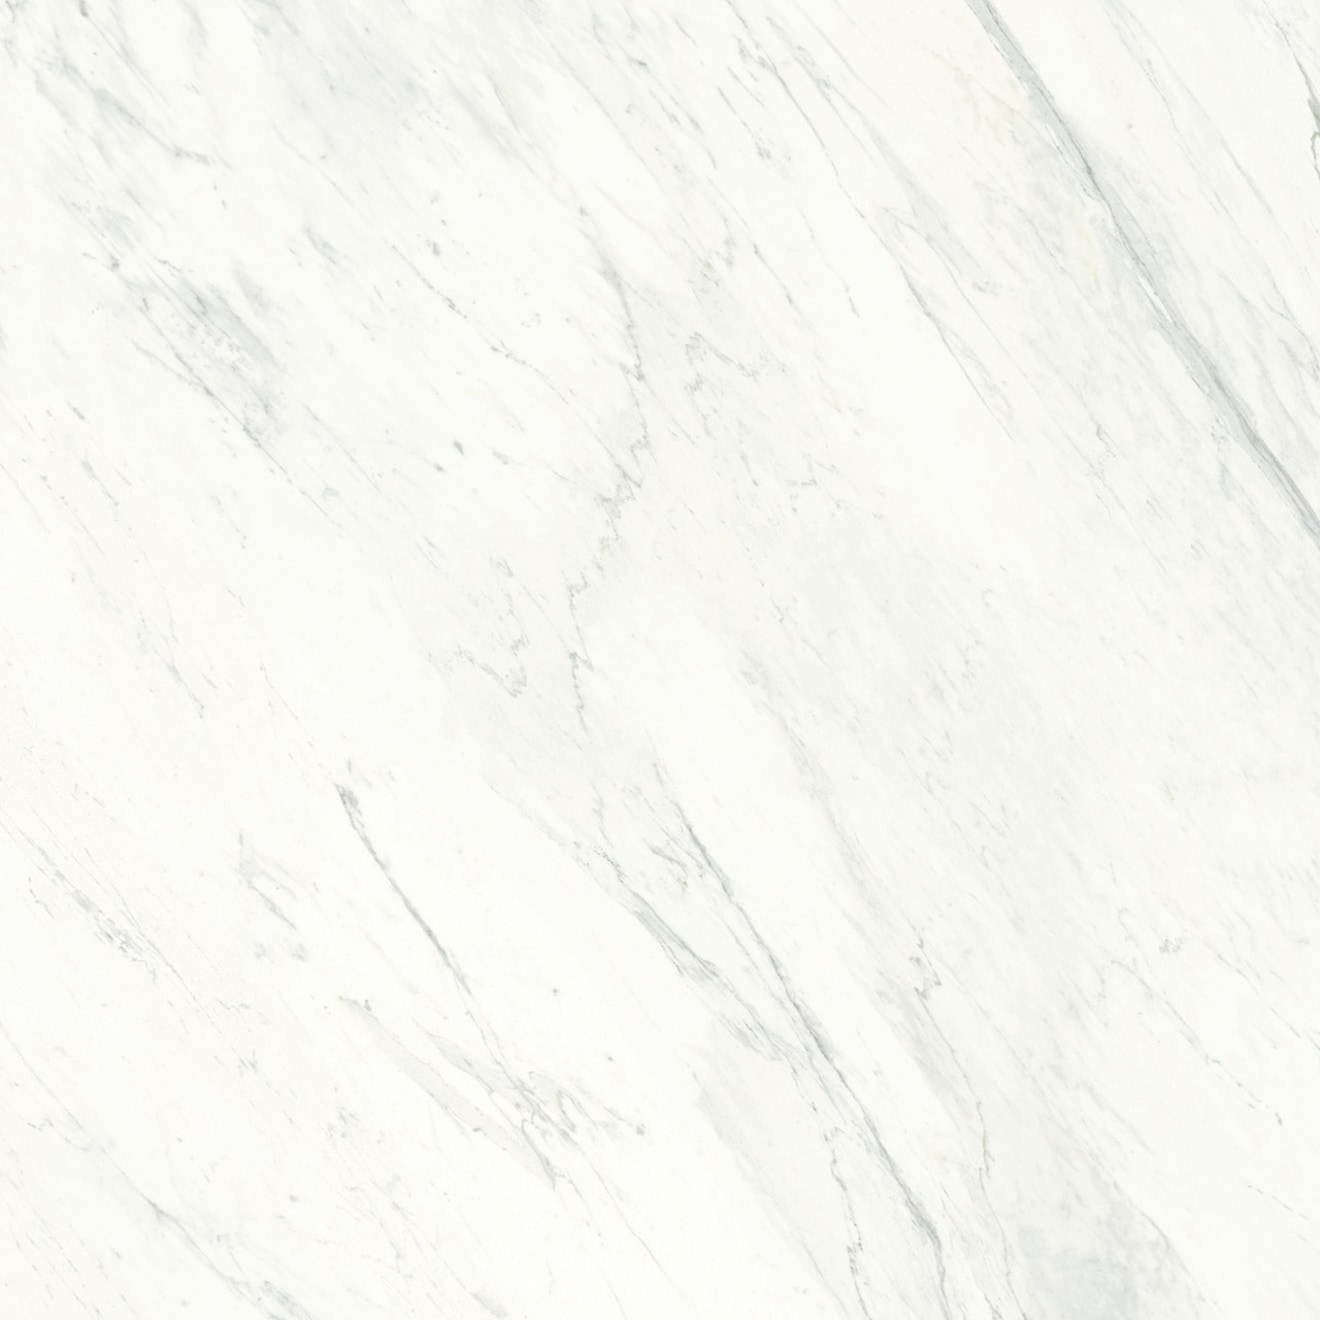 Magnifica Luxe White Porcelain in 1/4